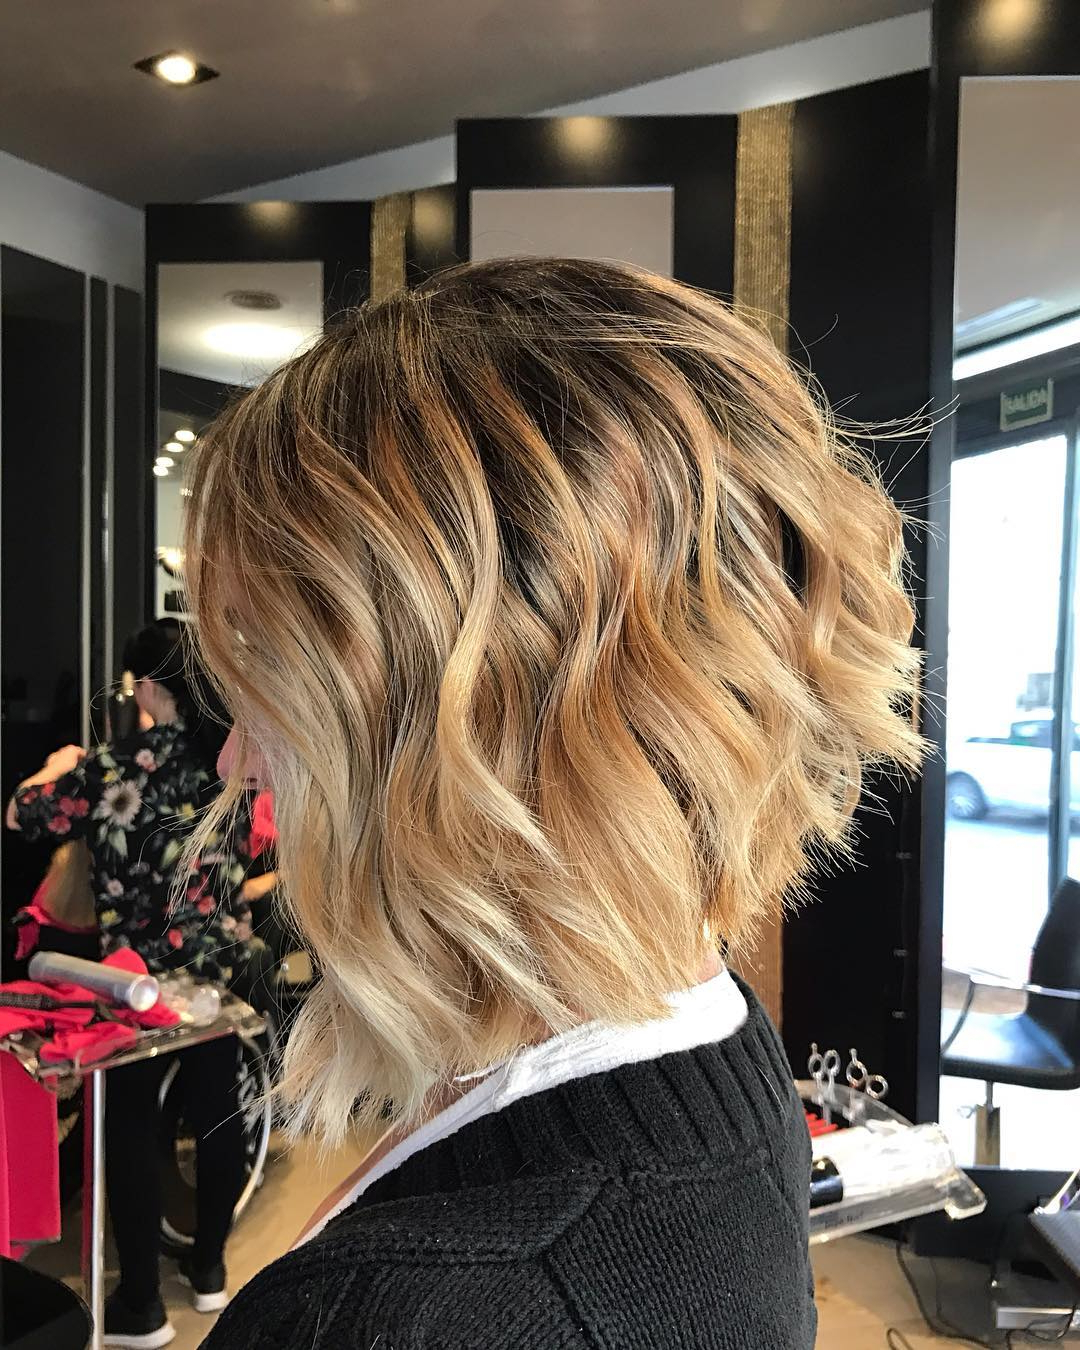 10 Layered Bob Hairstyles – Look Fab In New Blonde Shades Intended For Romantic Blonde Wavy Bob Hairstyles (View 8 of 20)